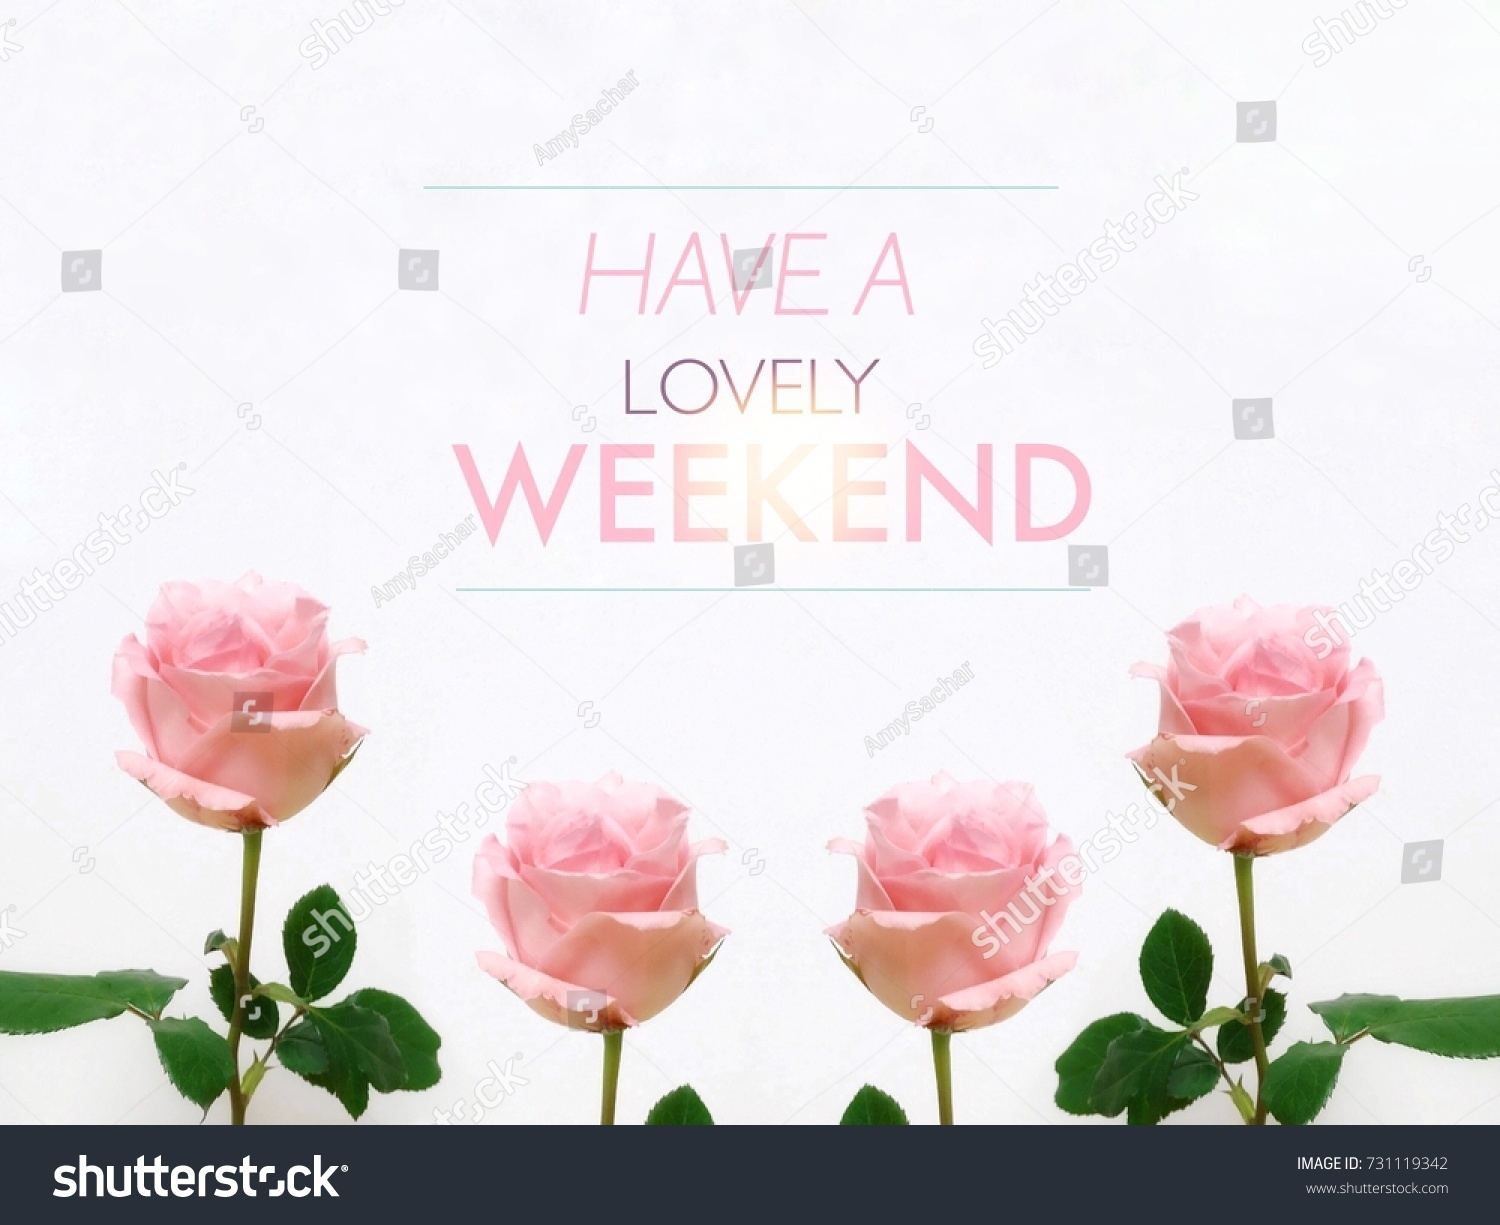 have a lovely weekend word and pink roses on white background